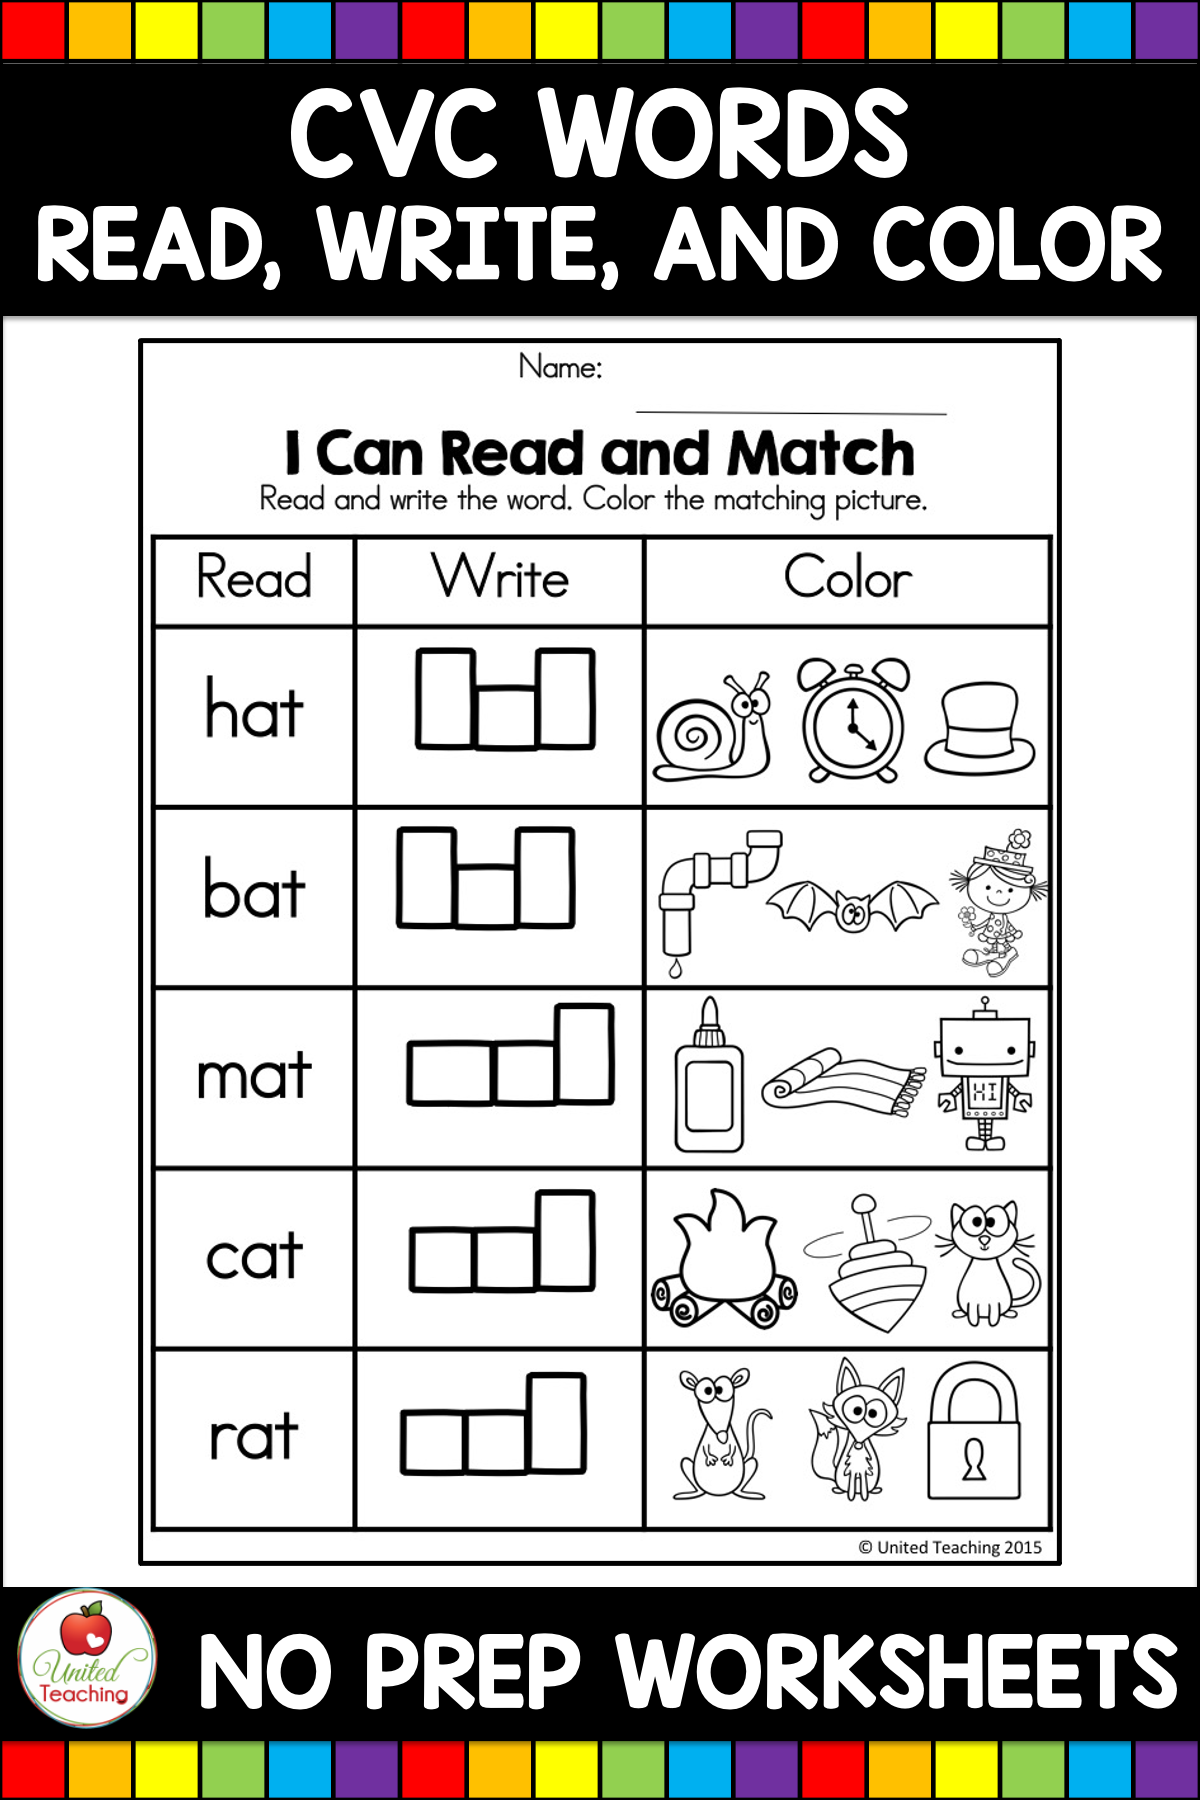 Cvc Words Read Write And Color United Teaching Cvc Words Cvc Word Activities Writing Cvc Words [ 1800 x 1200 Pixel ]